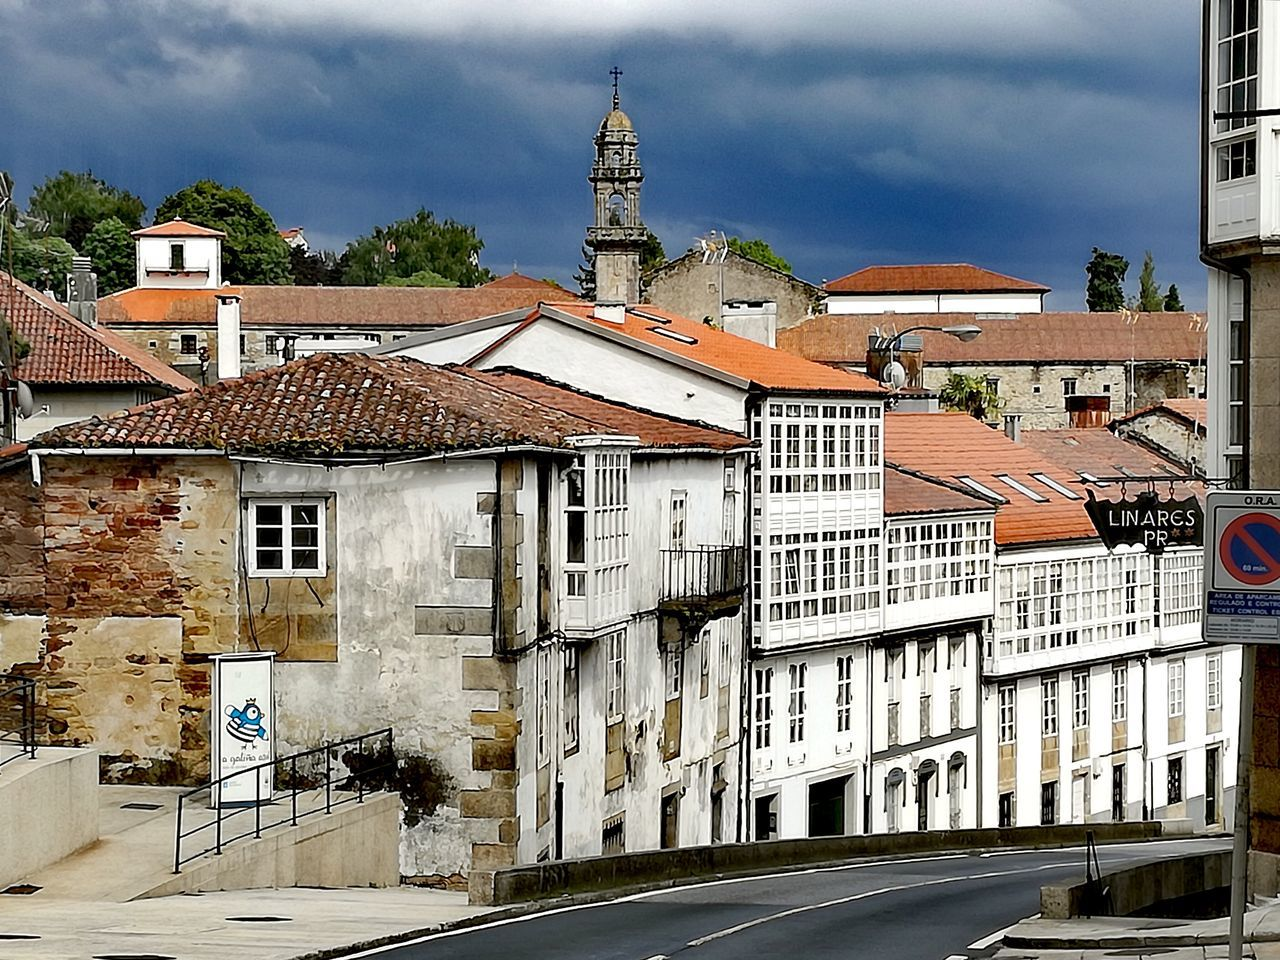 Architecture Building Exterior Sky Cloud - Sky Outdoors Day Built Structure No People Santiago De Compostela Galicia, Spain Spain Is Beautiful Rainy Day Walk Rainy Weather Rain Clouds History Religion Catholic Church